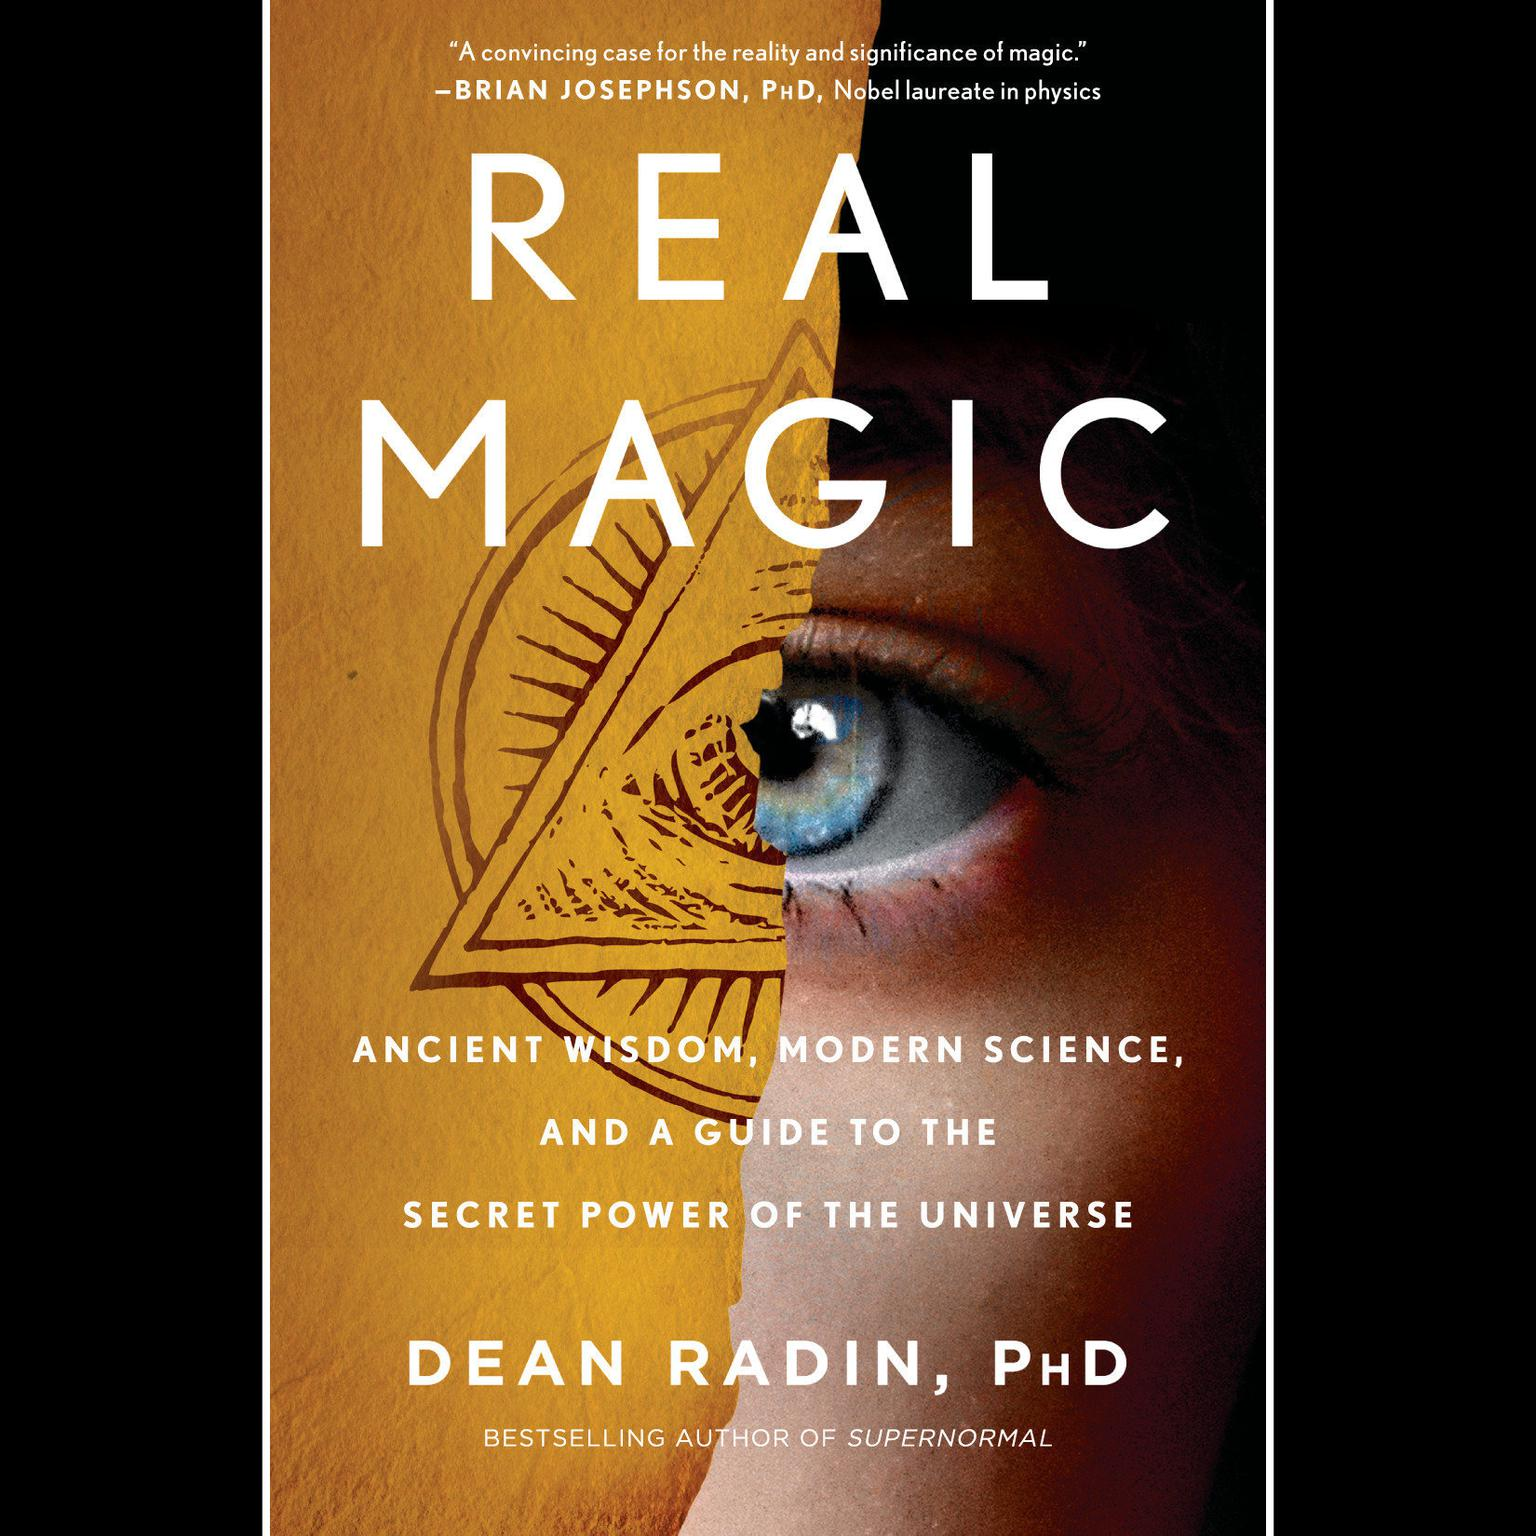 Printable Real Magic: Ancient Wisdom, Modern Science, and a Guide to the Secret Power of the Universe Audiobook Cover Art